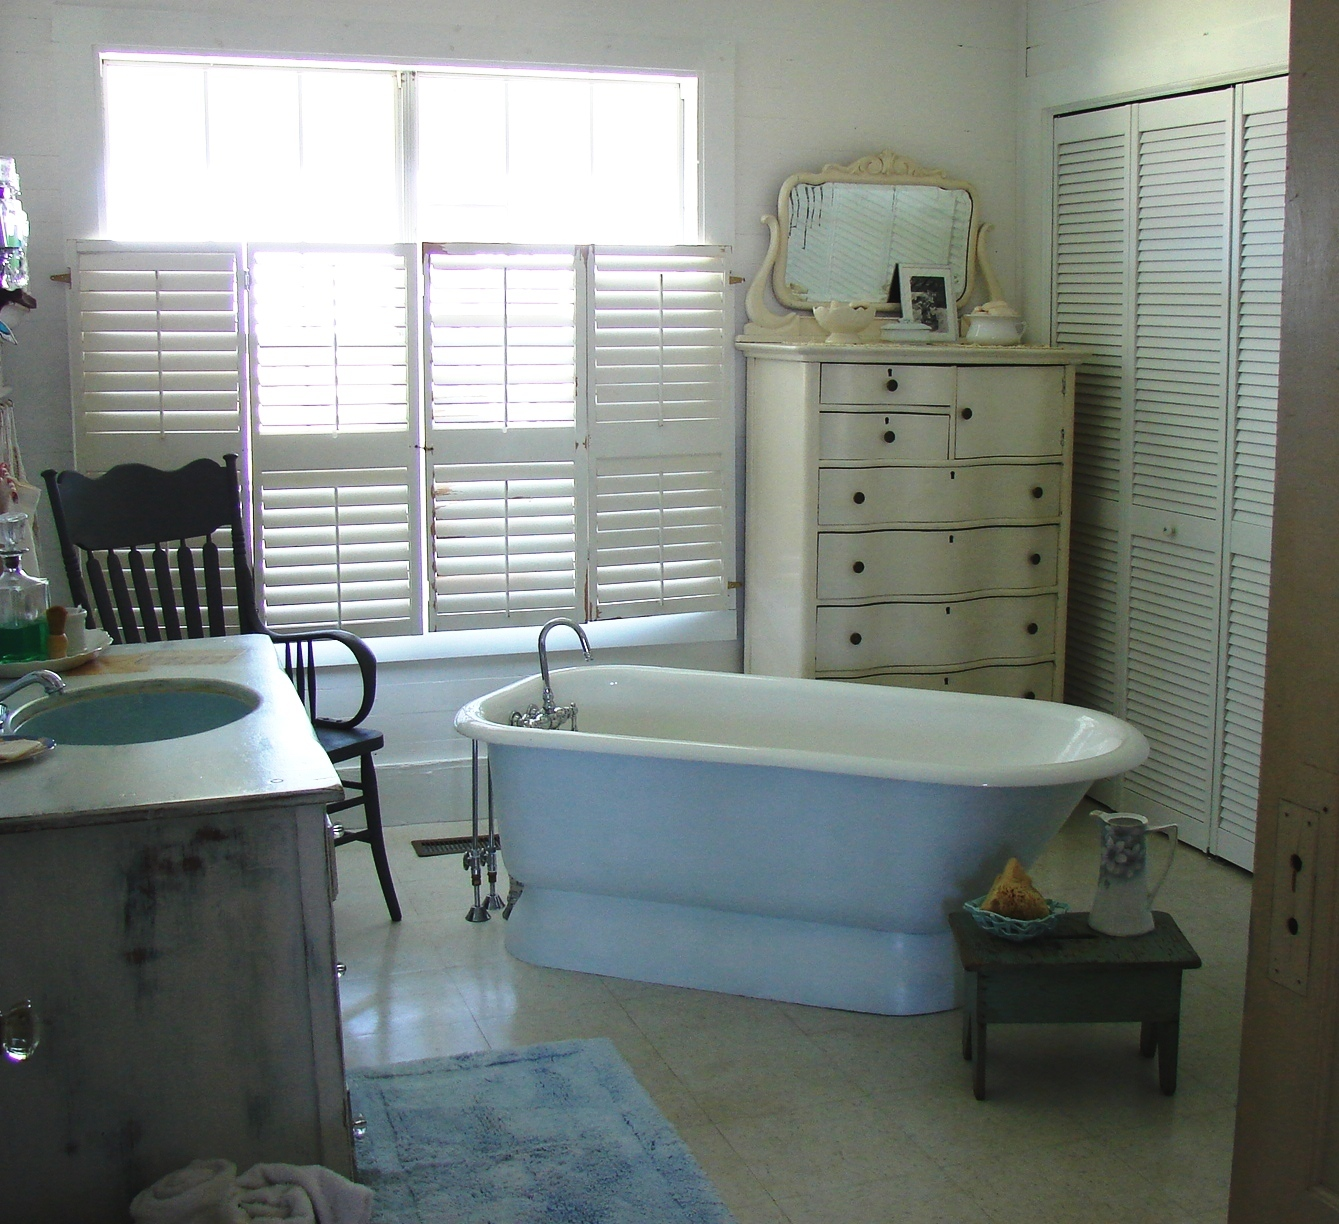 The Country Farm Home: The 1930s Country Bath on Rural Bathroom  id=60340